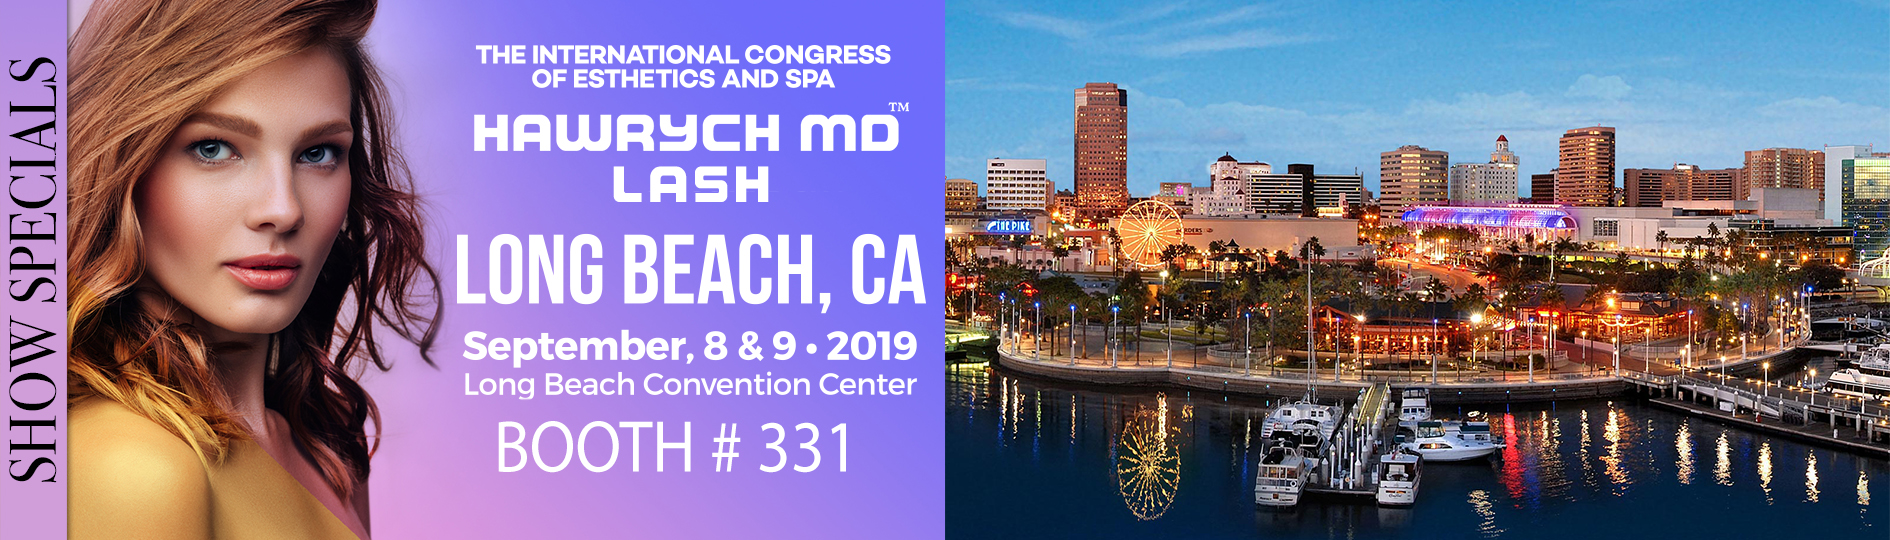 long beach california beauty show 2019